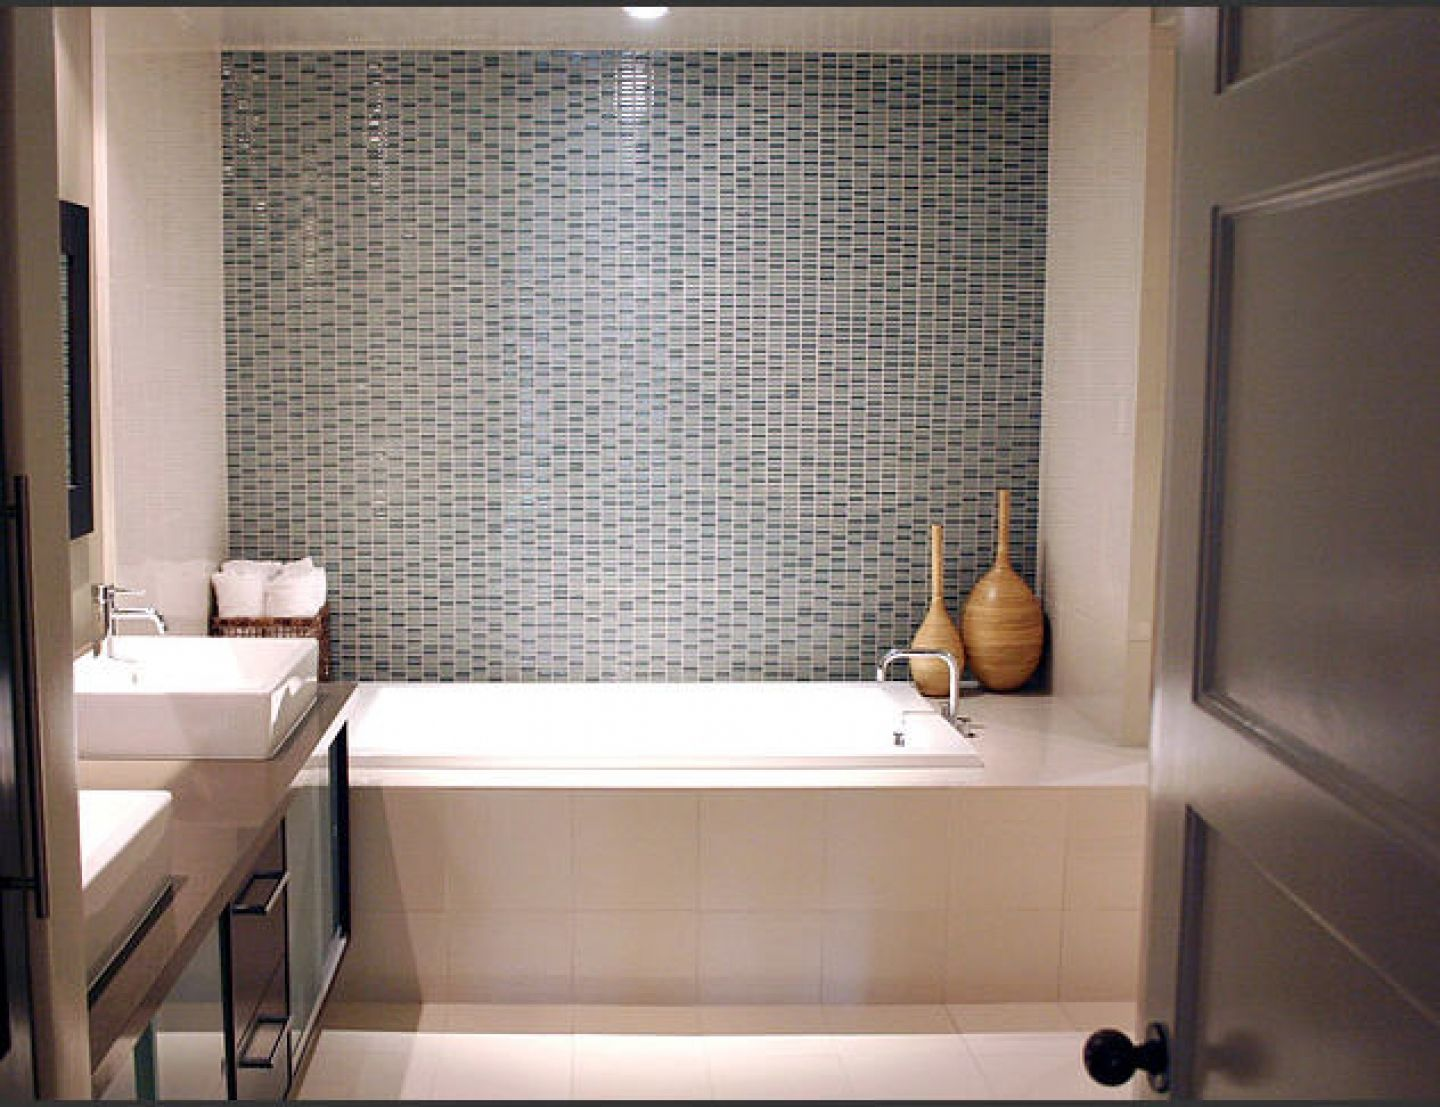 Bathroom tiles designs for small spaces - Bathroom Small Bathroom Design Ideas Picture